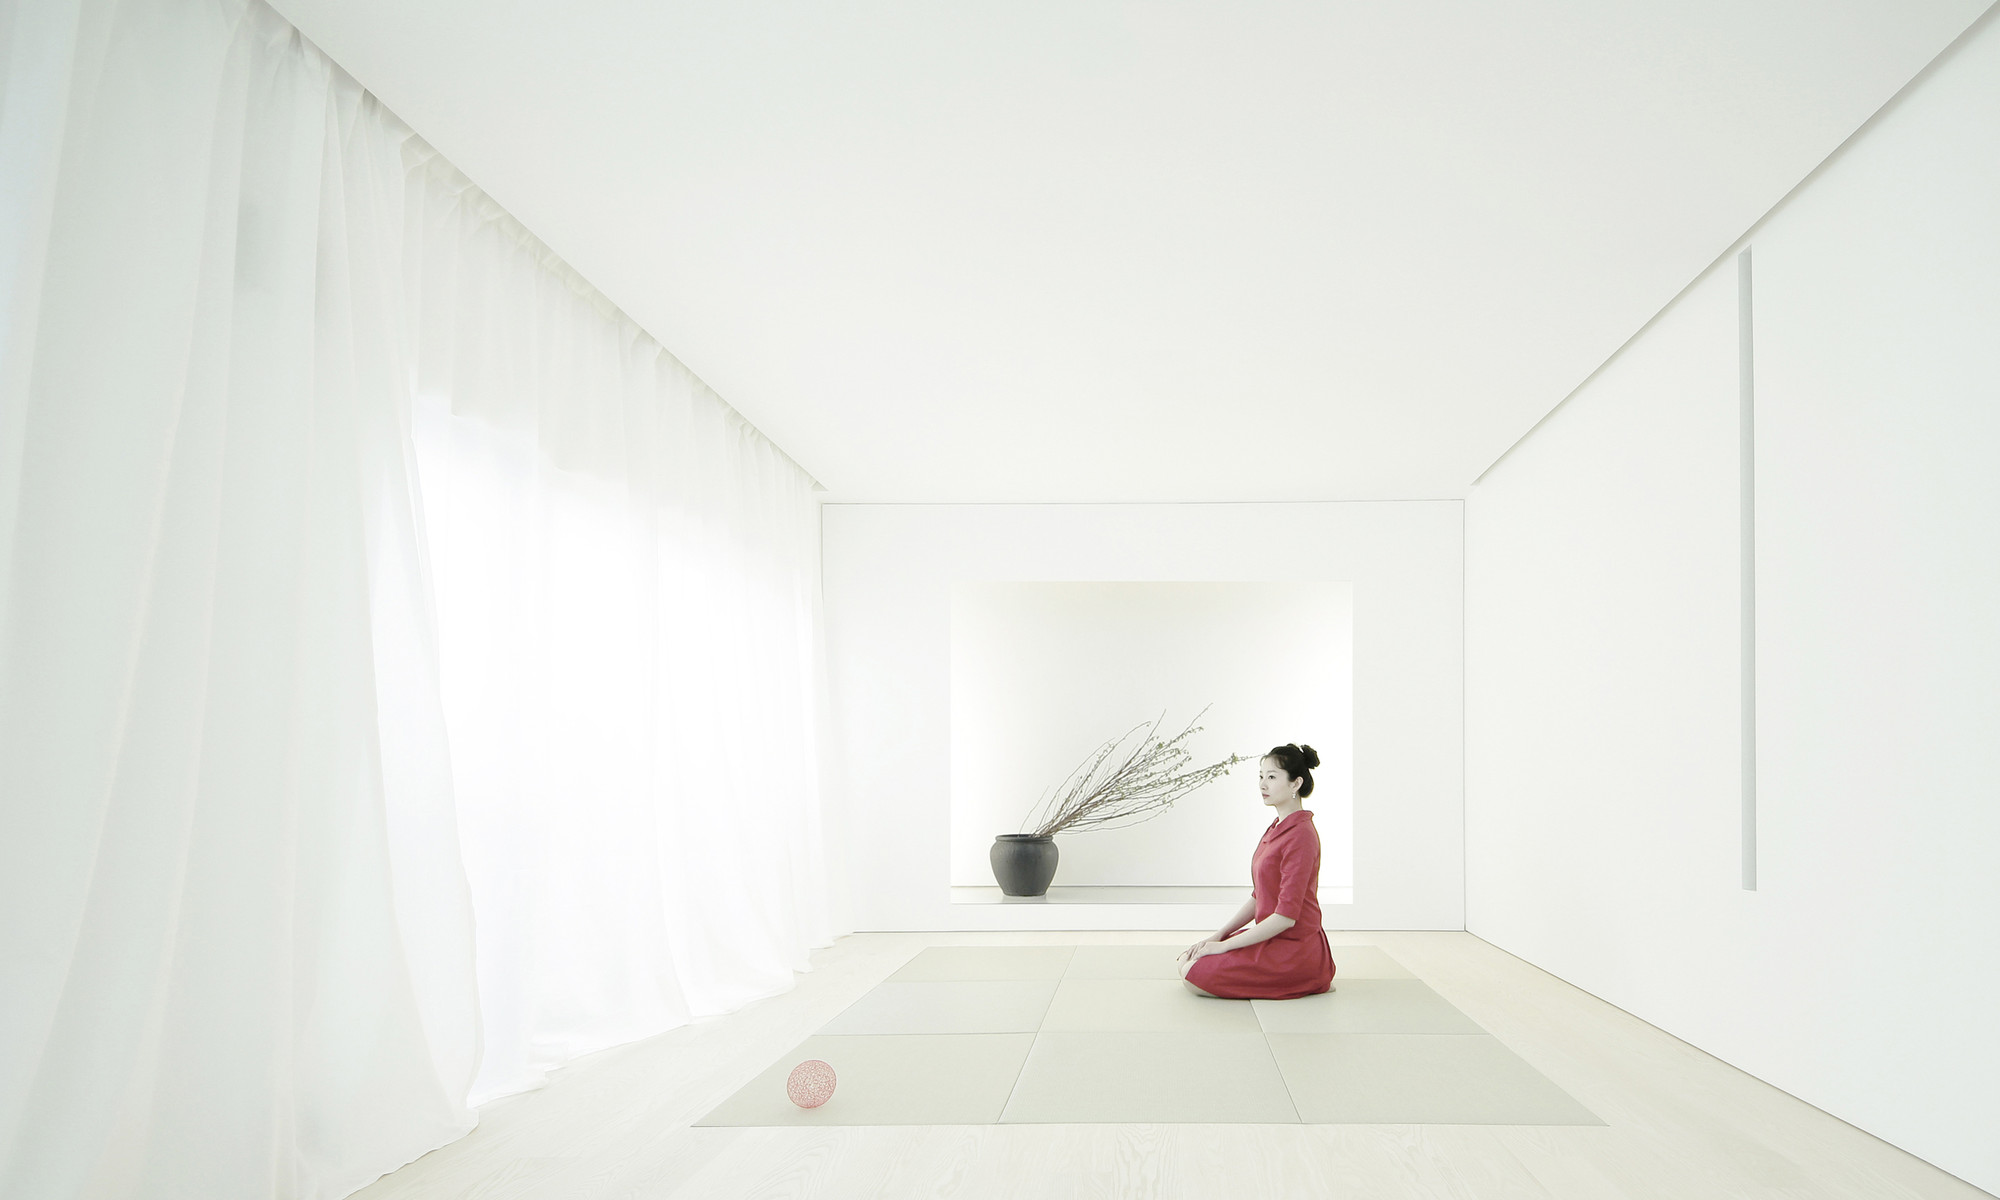 House for Installation / Jun Murata JAM, Courtesy of Jun Murata